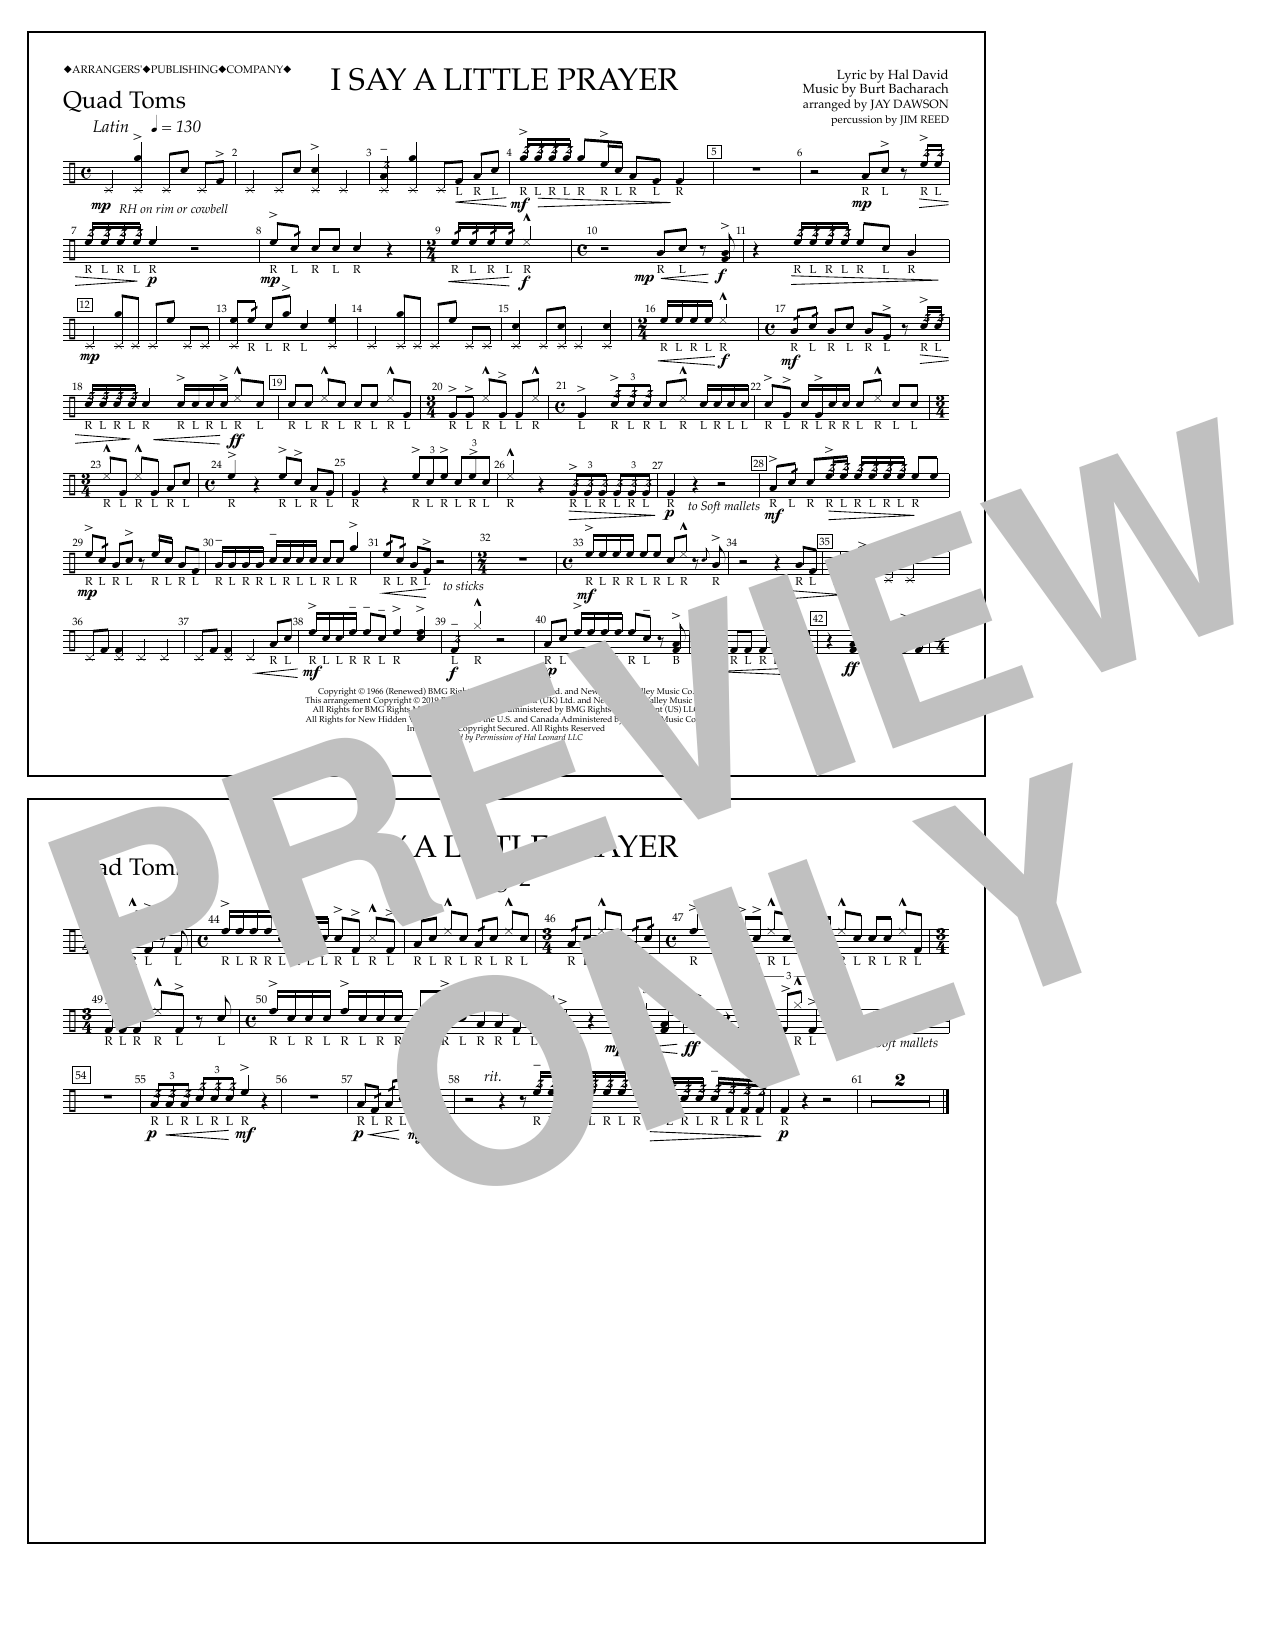 Aretha Franklin I Say a Little Prayer (arr. Jay Dawson) - Quad Toms sheet music notes and chords